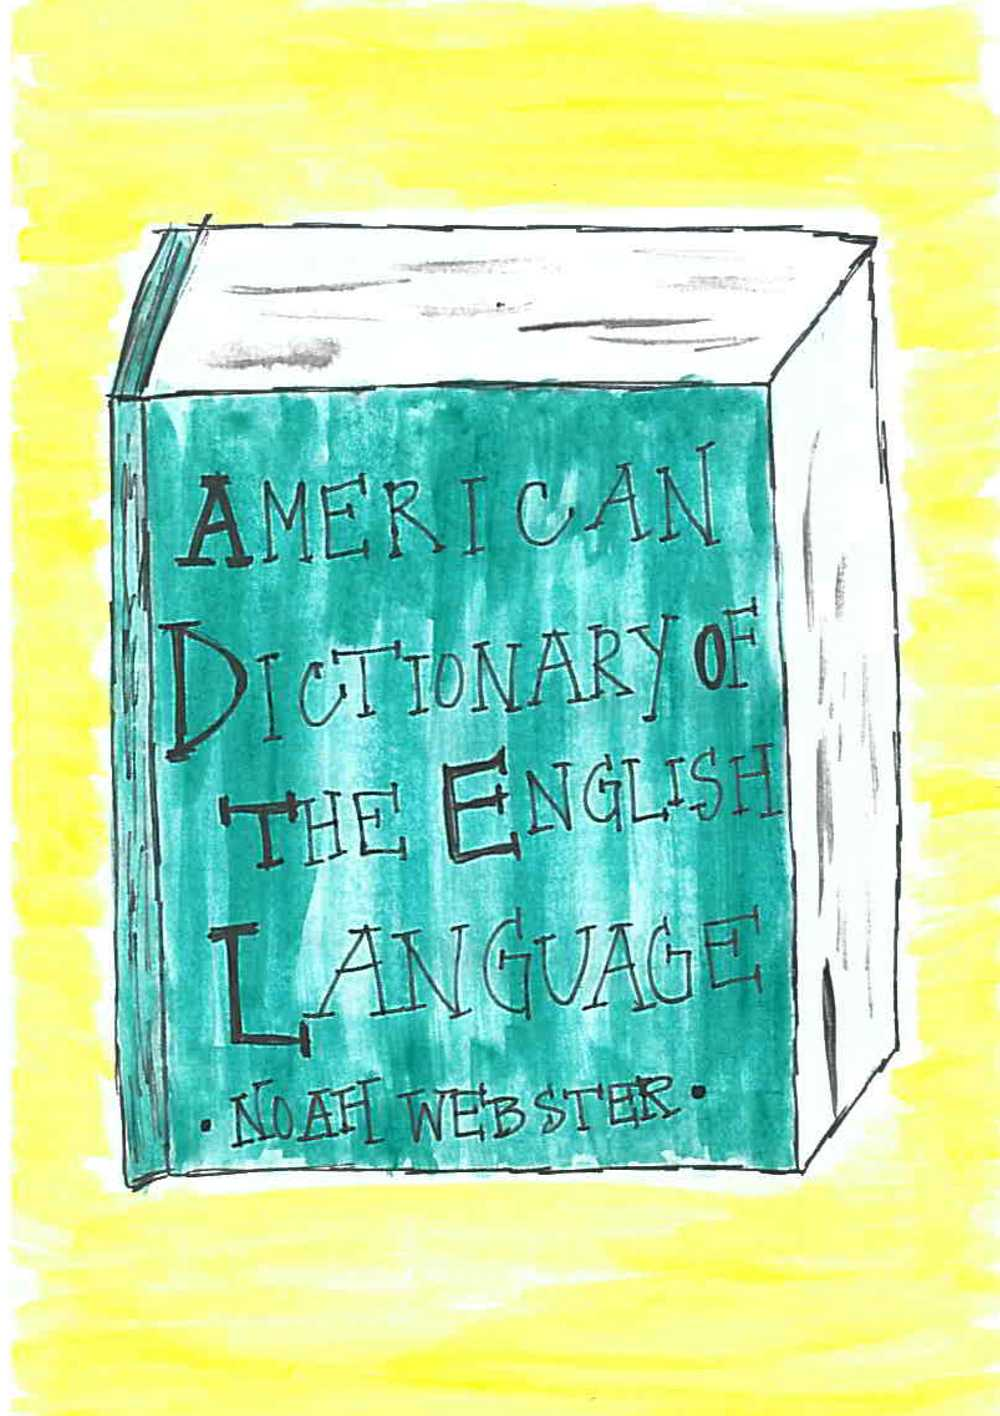 Noah Webster was responsible for many of the American changes to the English language.